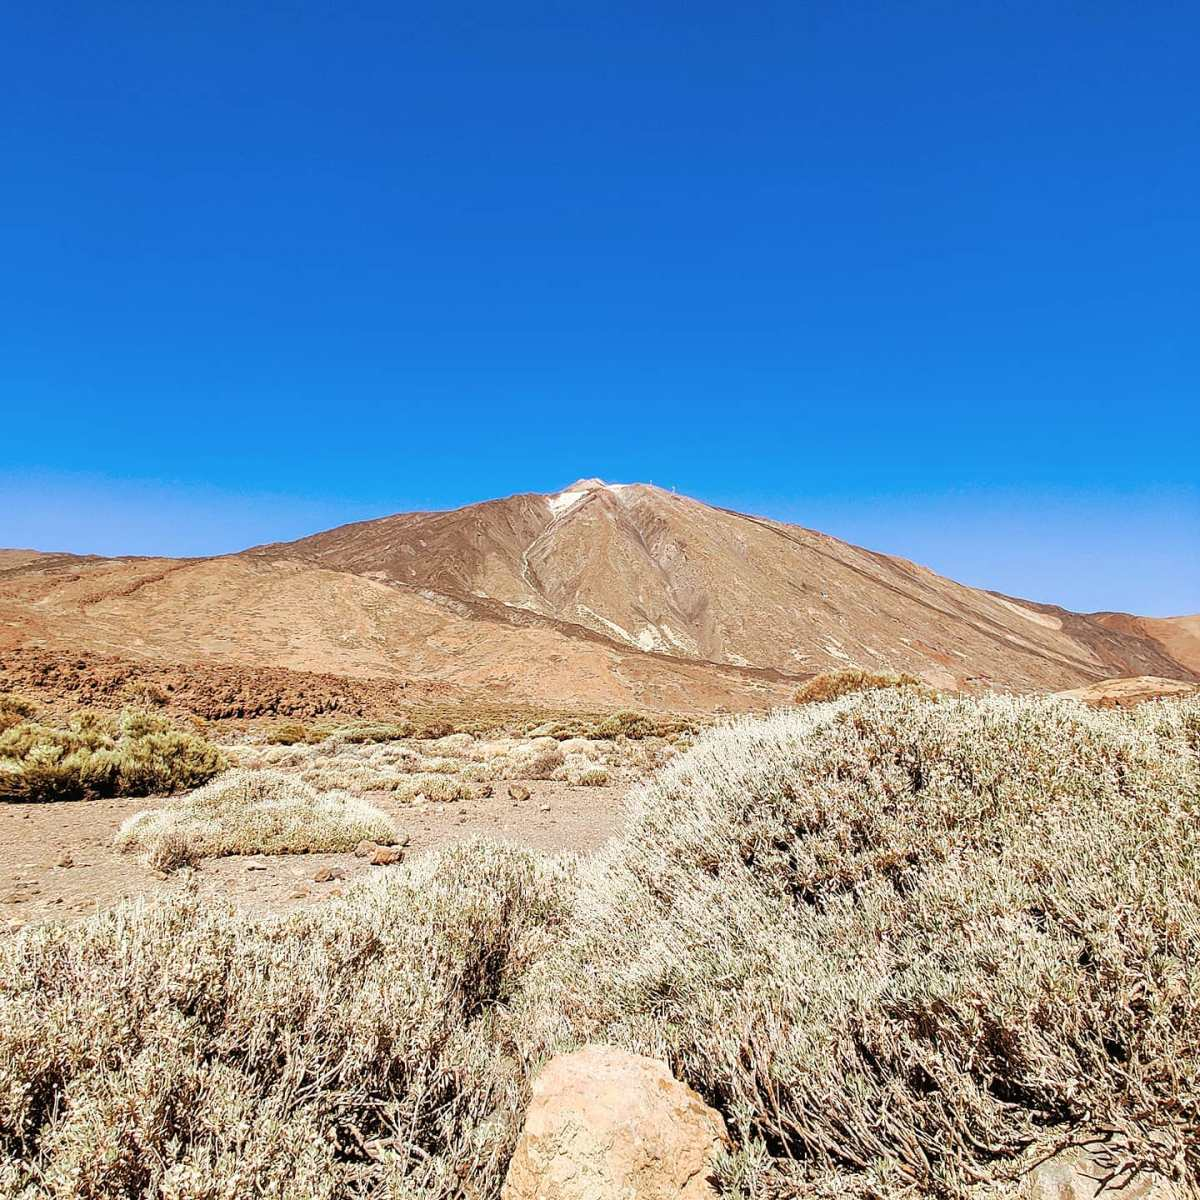 Top of the Canary Islands 🤙 El Teide, Tenerife 2020#tenerife #canaryislands #traveling #traveller #travelingram #travels #travelpics #tbt #travelling #vulcano #travellife #travelstoke #traveler #travelawesome #sky #travel #teide #travelgram #traveladdict #travelmore #travelphotography #nature #travelholic #travelblog